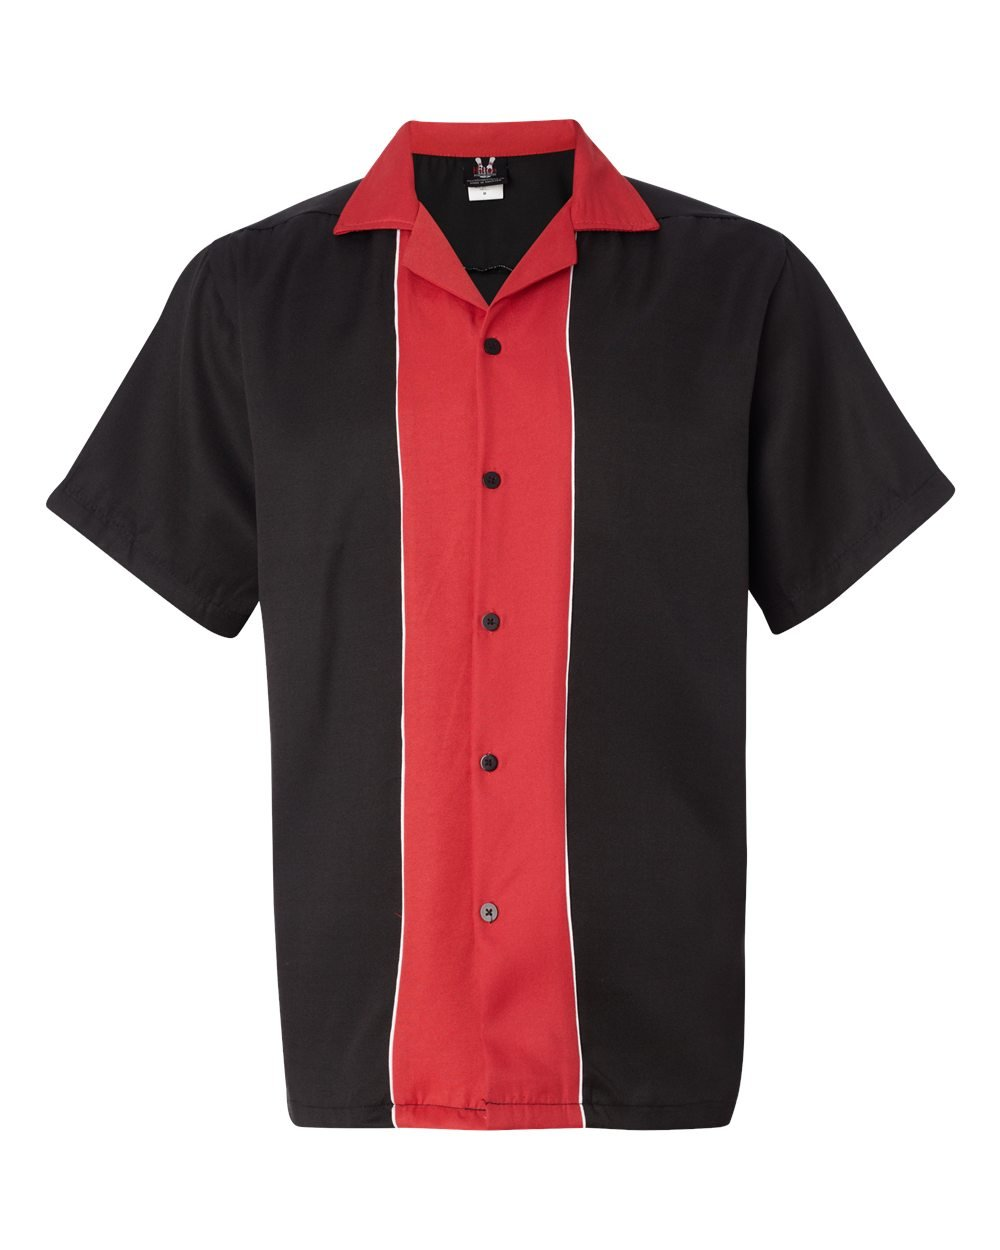 Hilton Men's Retro Quest Bowling Shirt, Black/ Red, Medium by Hilton